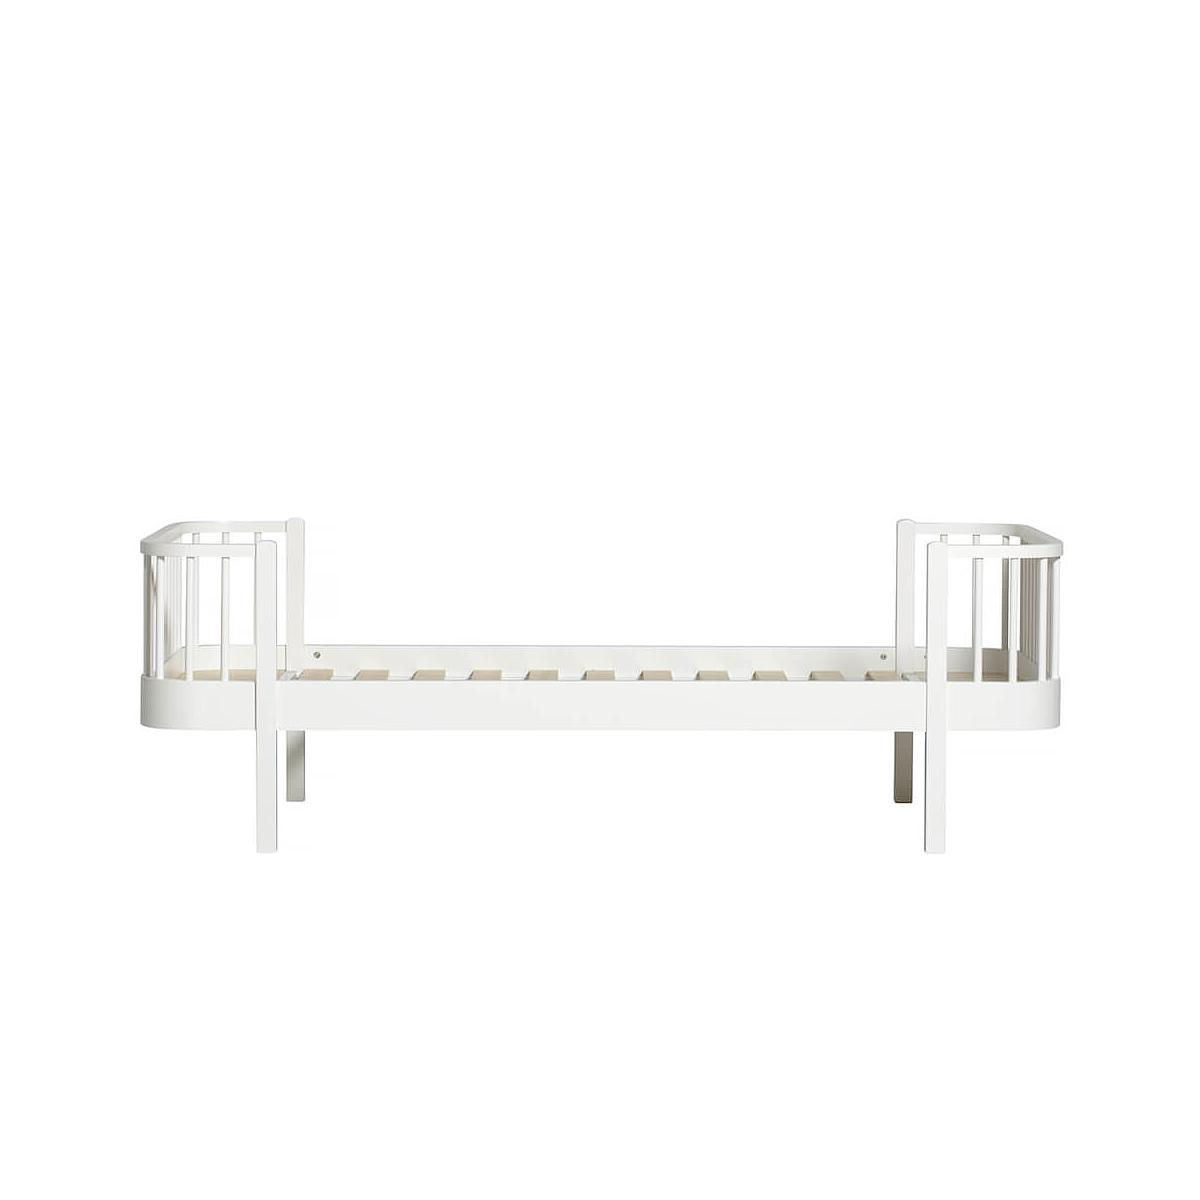 Lit bas évolutif 90x200cm WOOD Oliver Furniture blanc